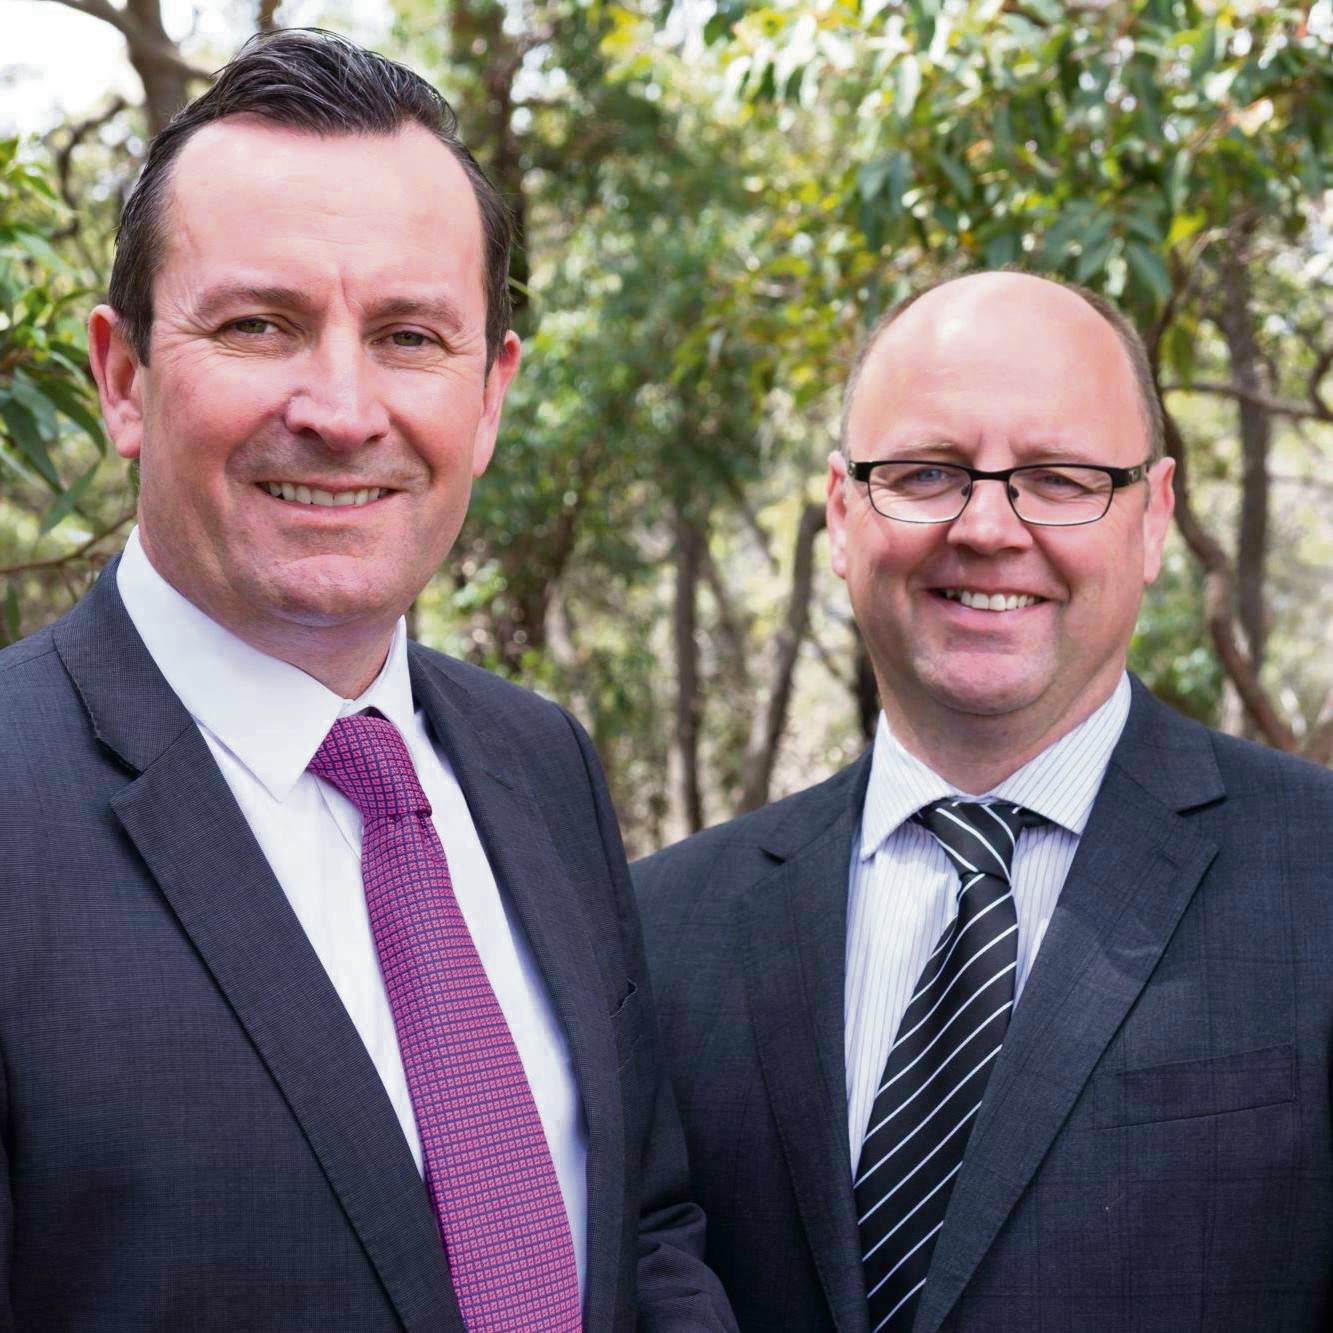 Premier Mark McGowan with Darling Range MLA Barry Urban.